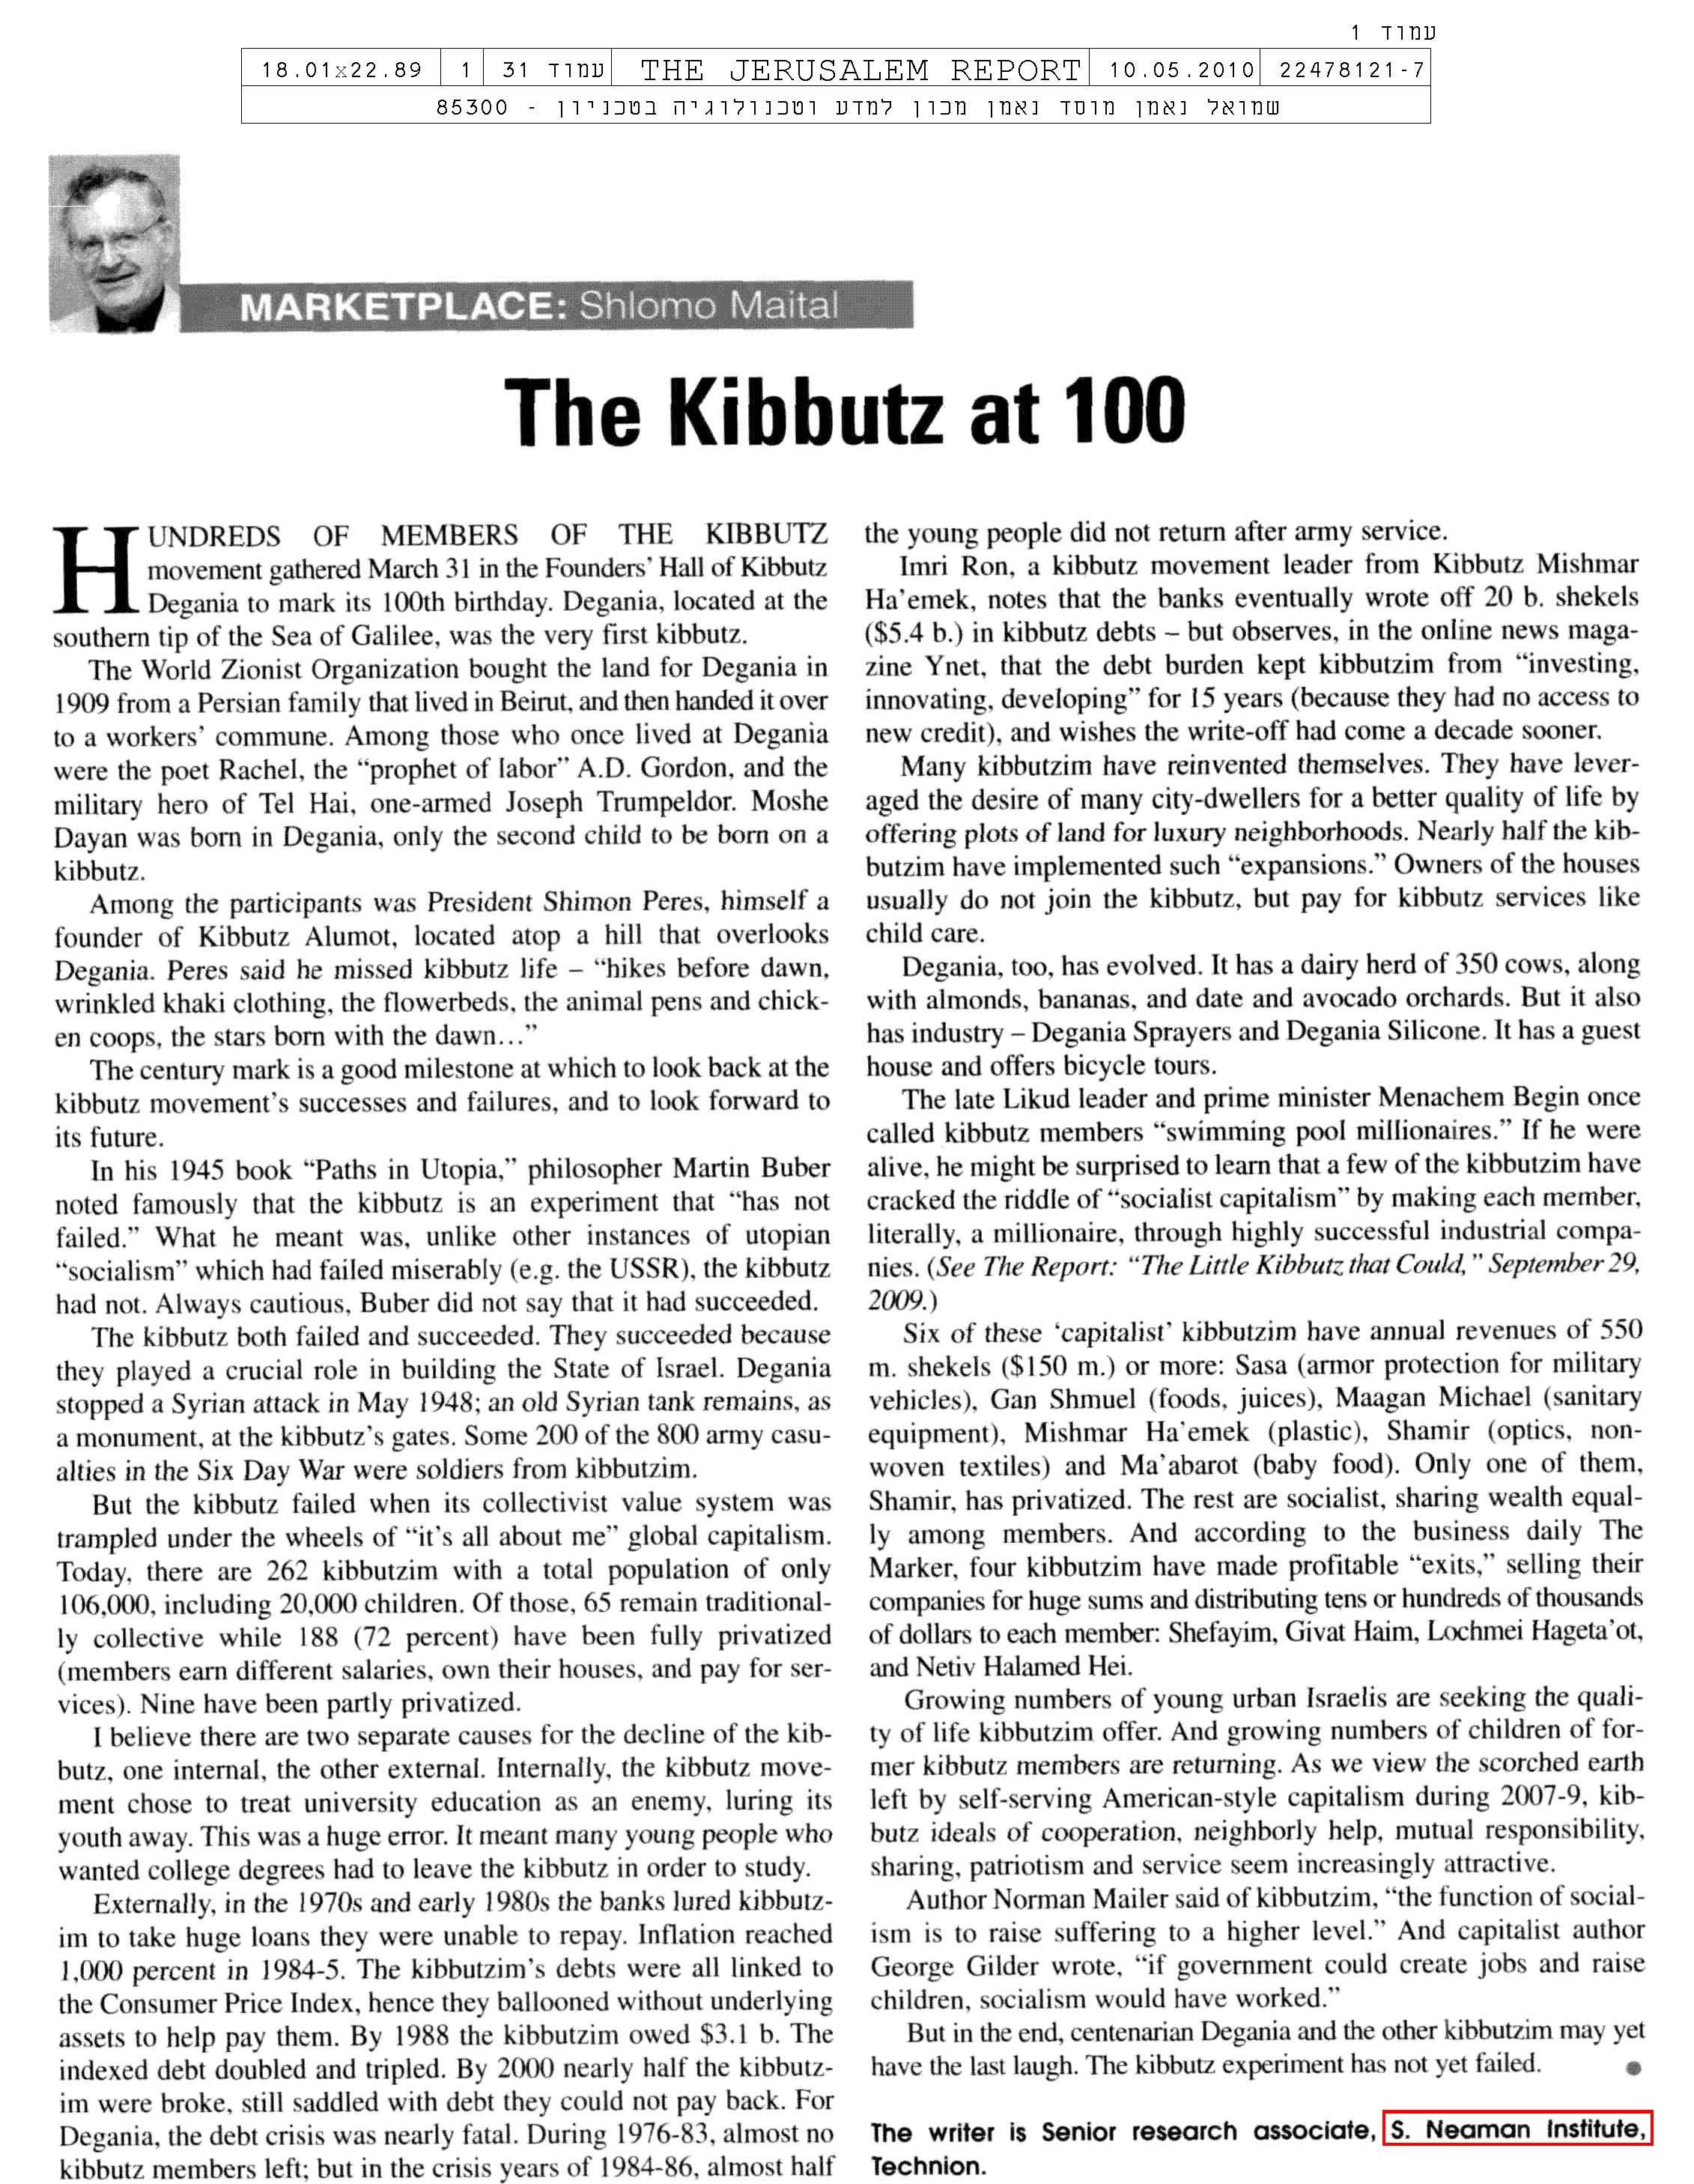 The Kibbutz at 100